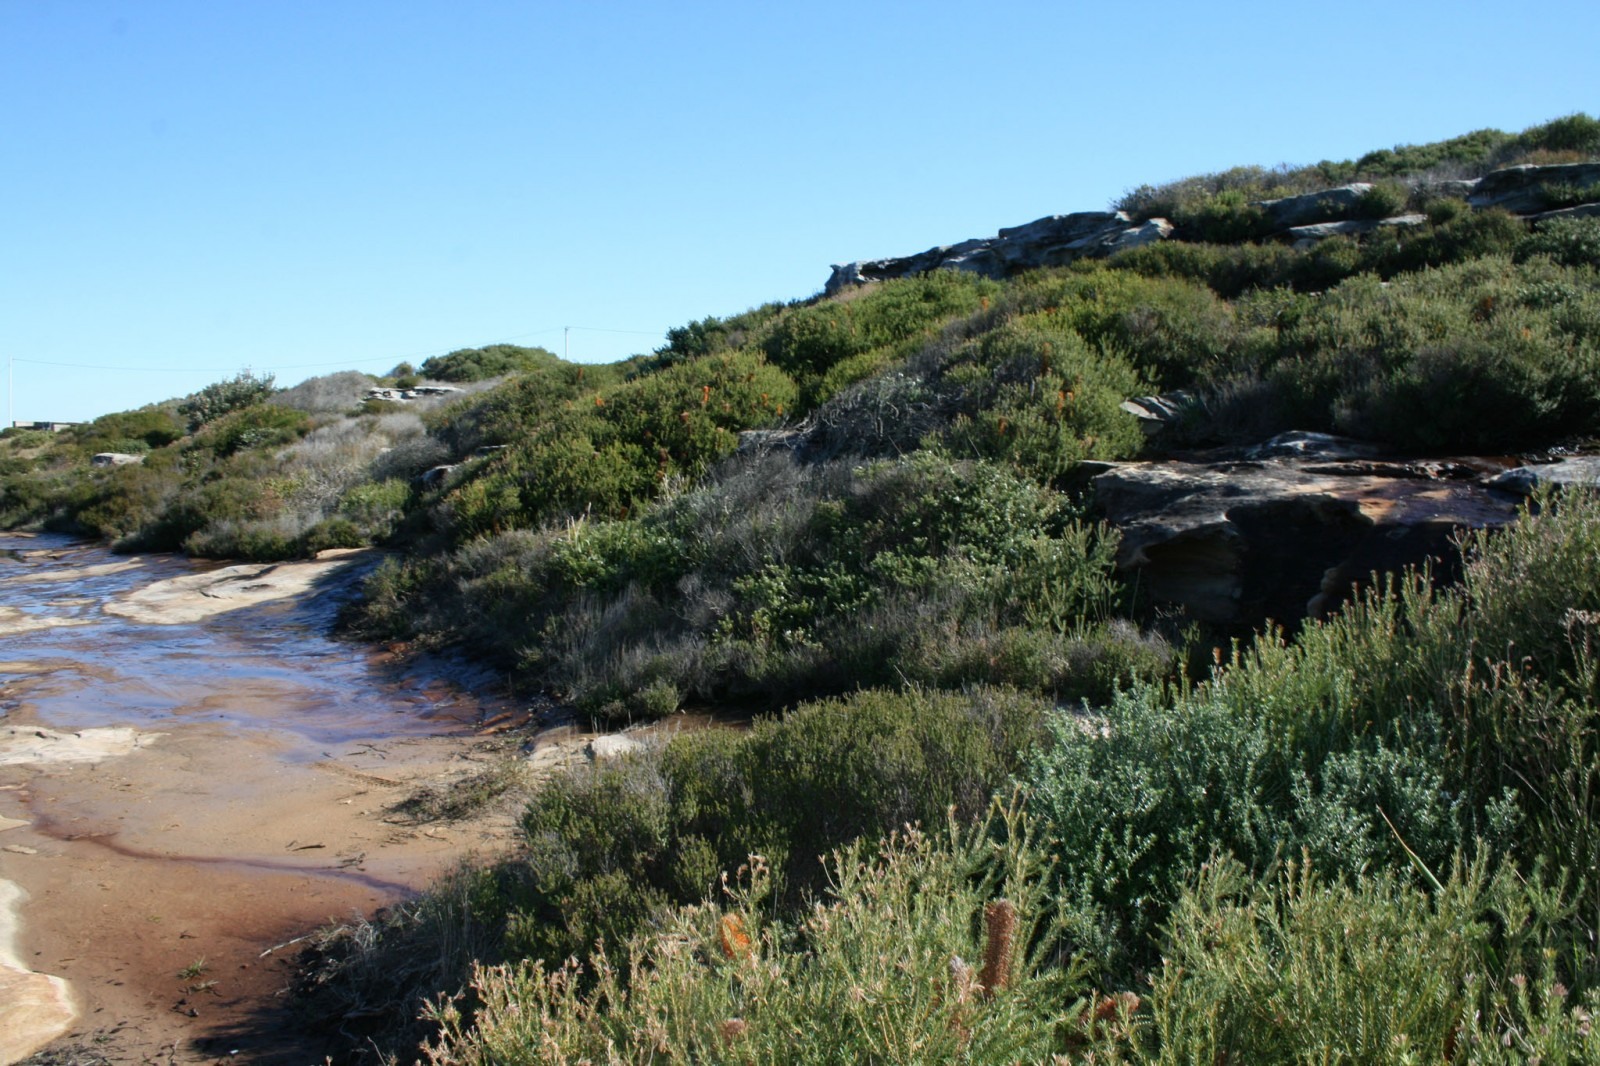 Natural heathland and shrubland dominated the sandy areas and exposed sandstone promontories.